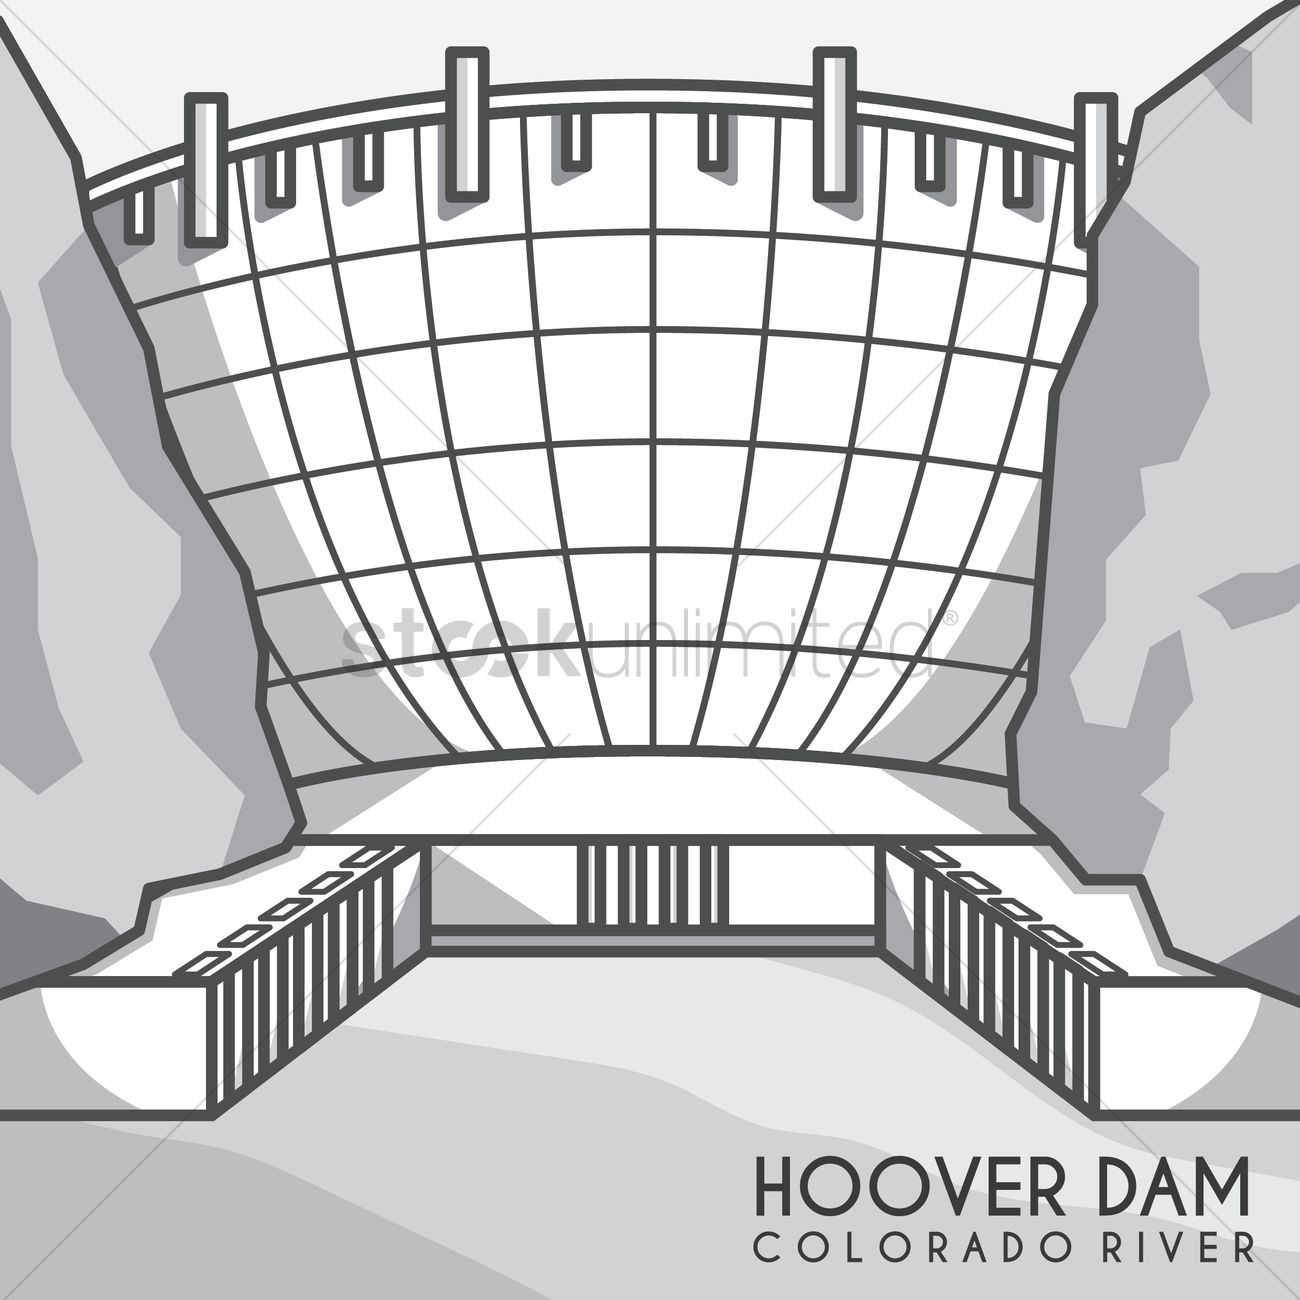 Hoover dam Vector Image.